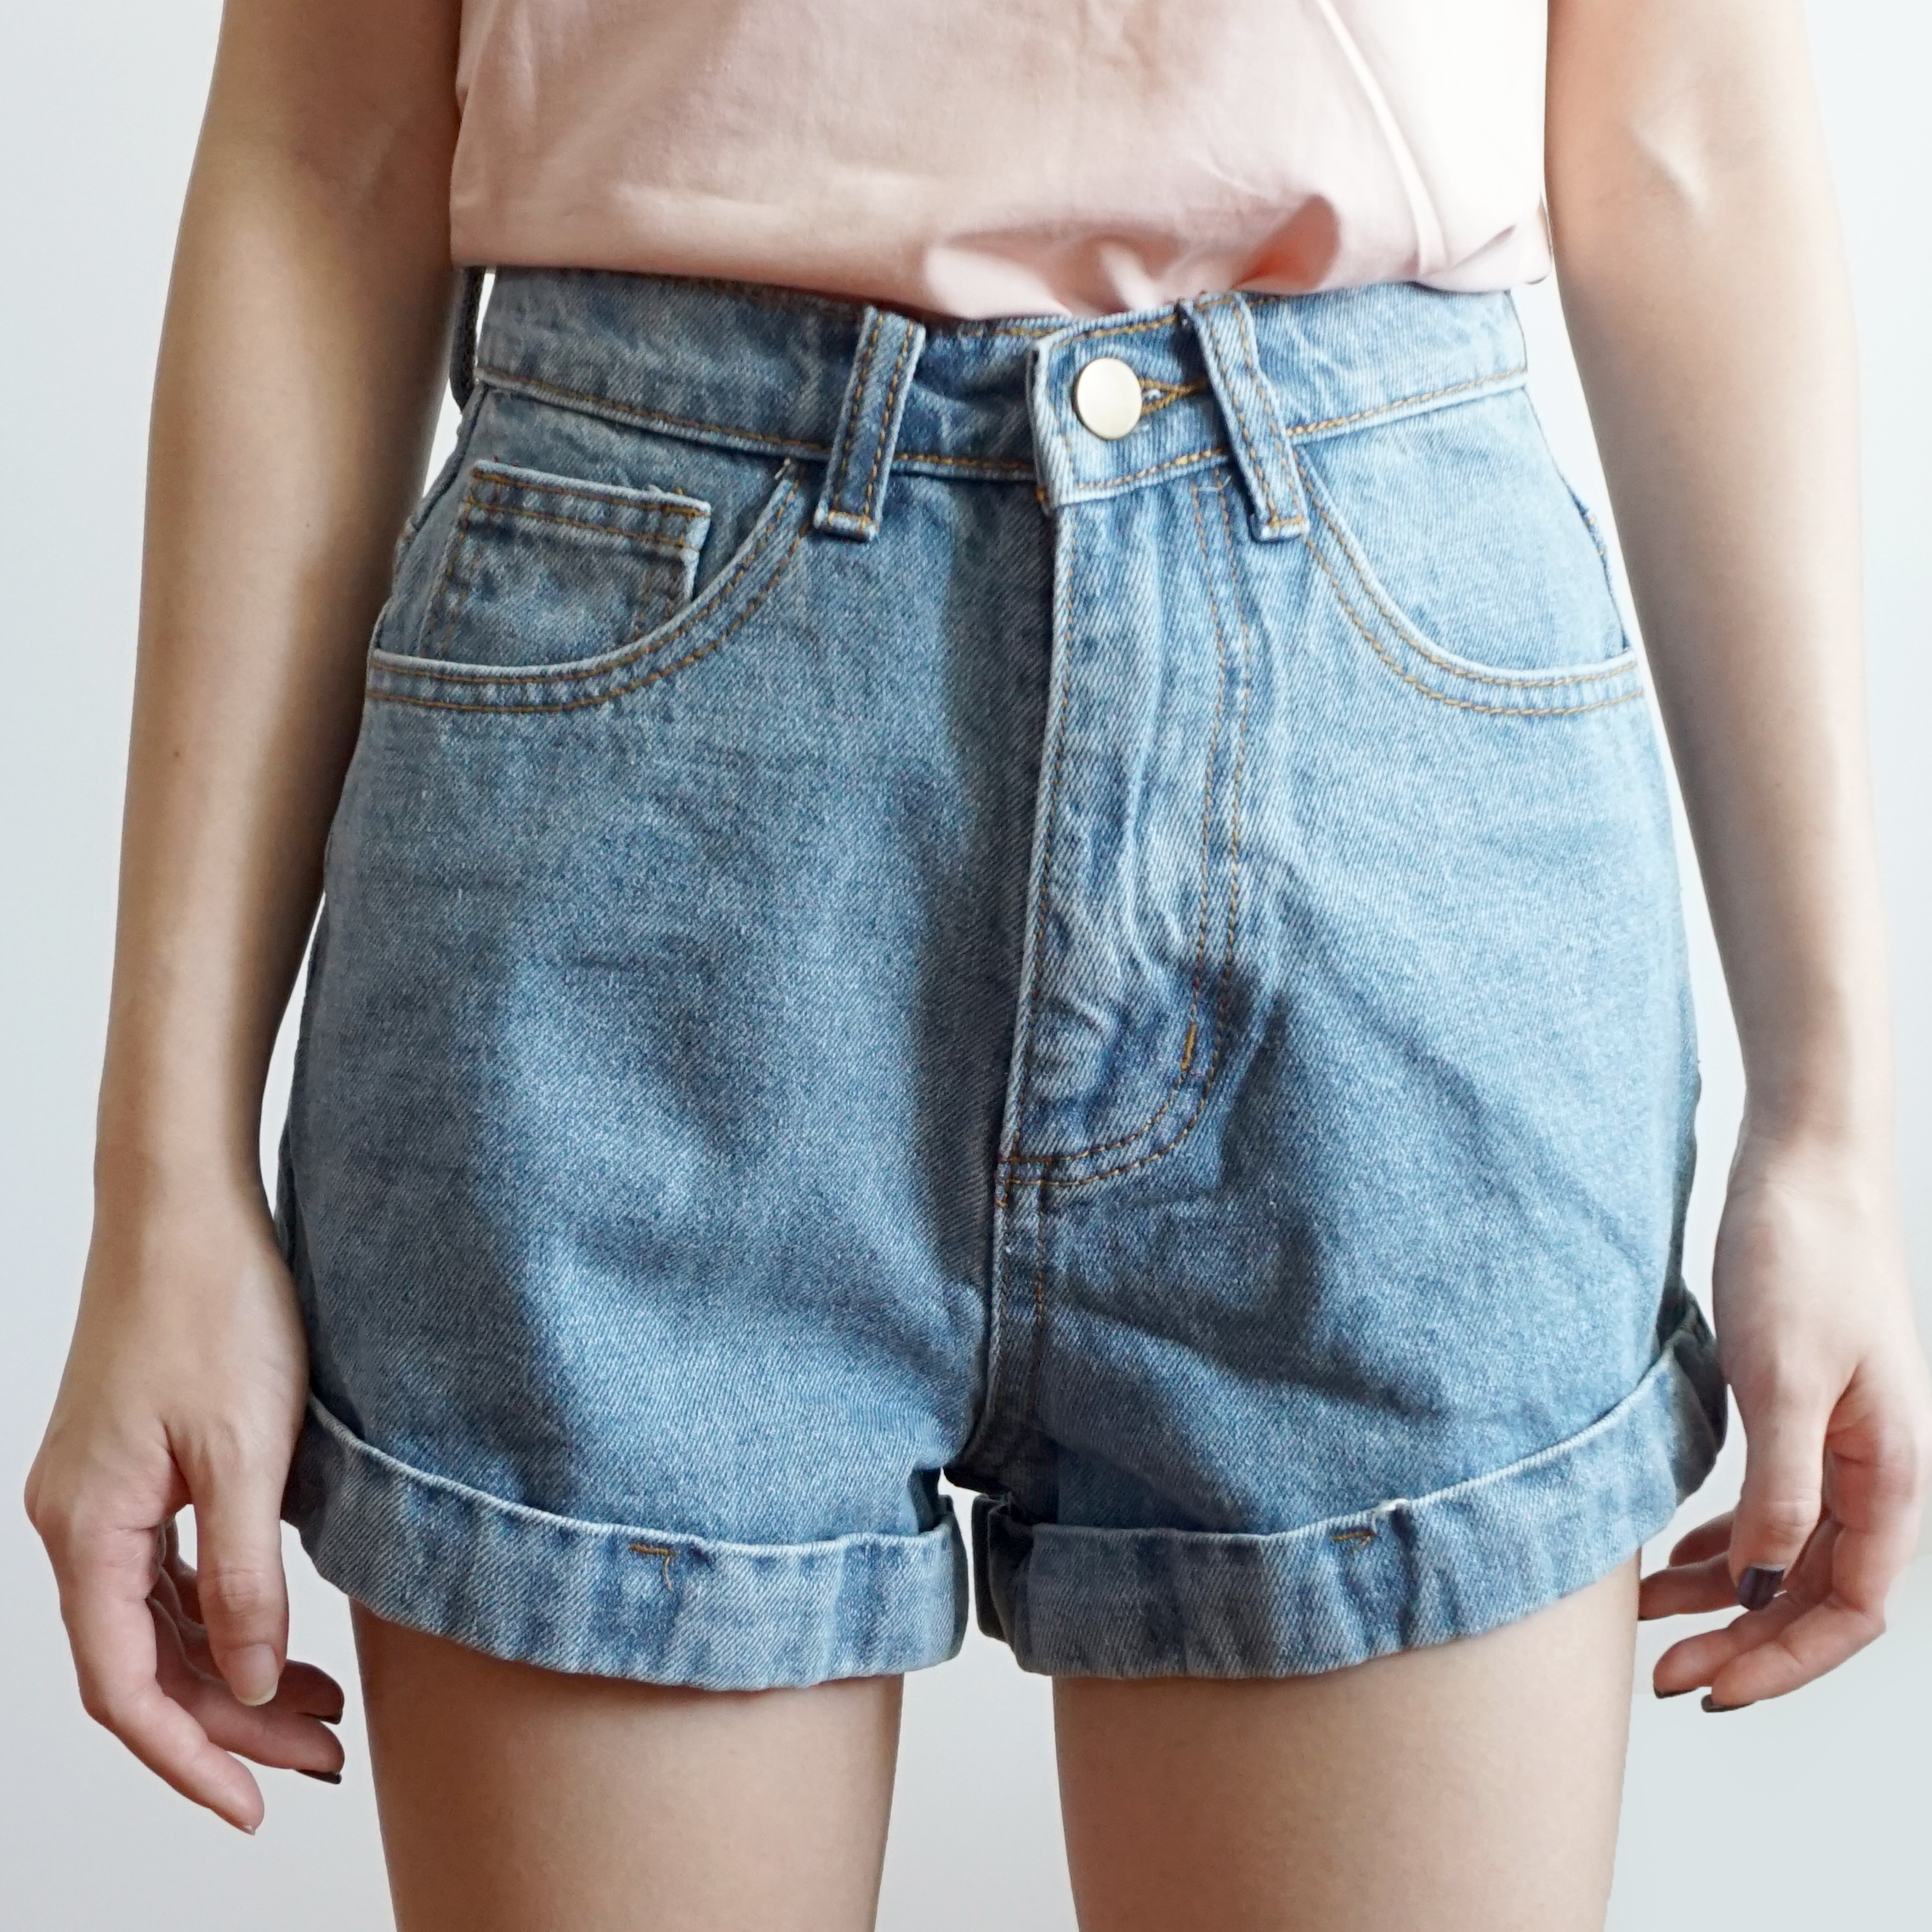 253f033011 Vintage Cuffed Denim High Waist Shorts (4 Colors) · Megoosta Fashion ...